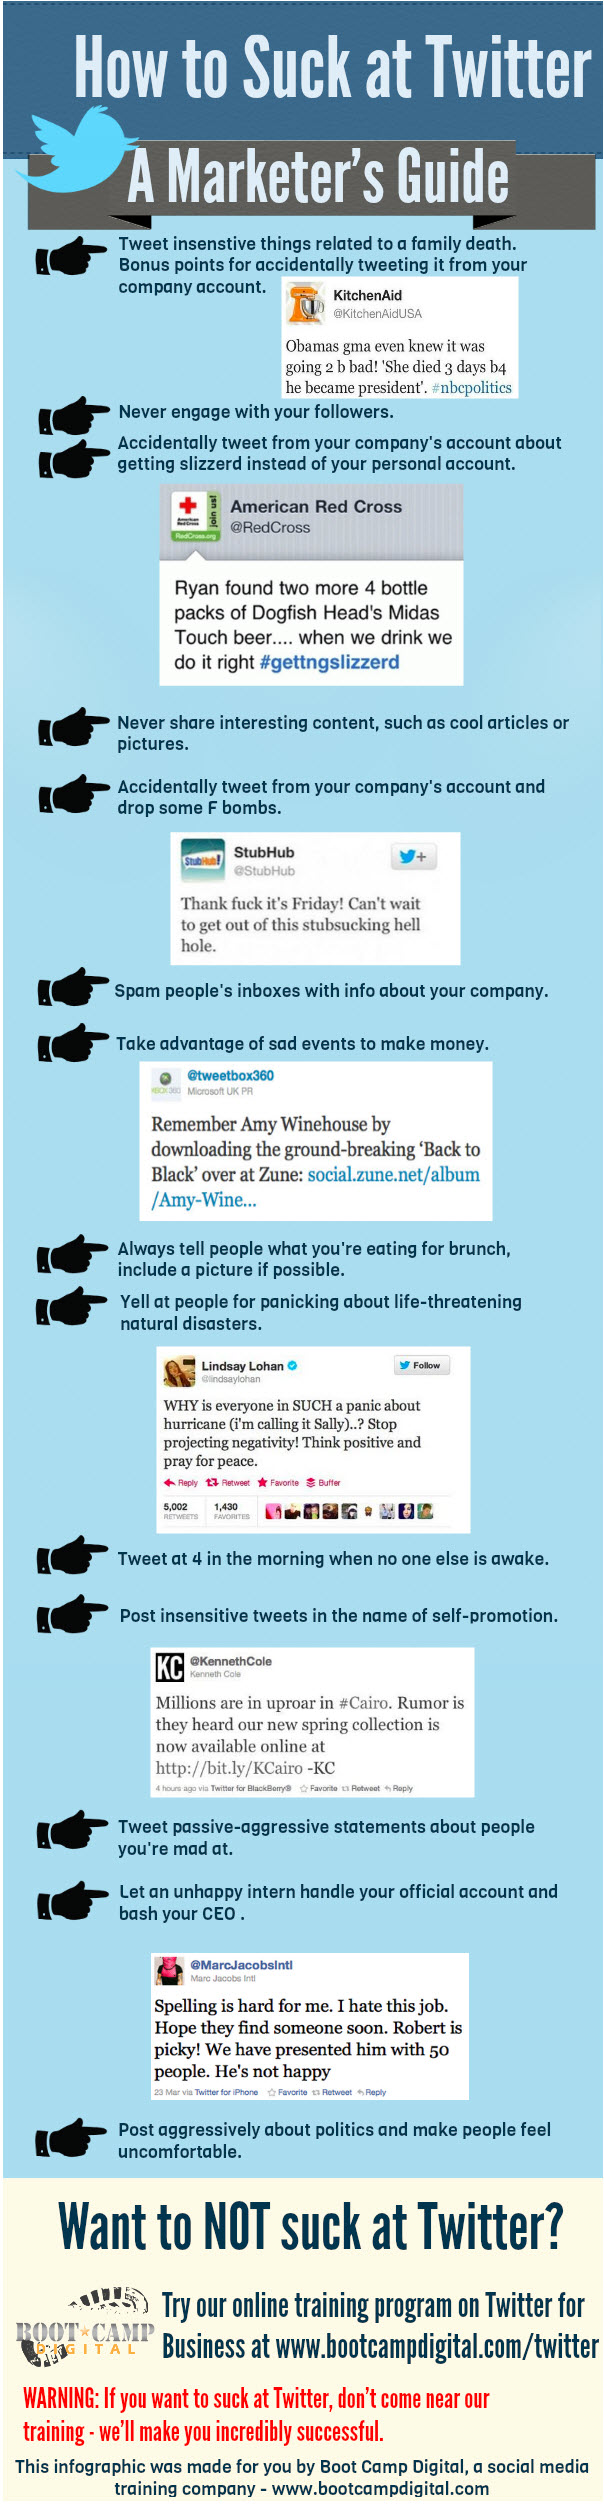 How-to-Suck-at-Twitter